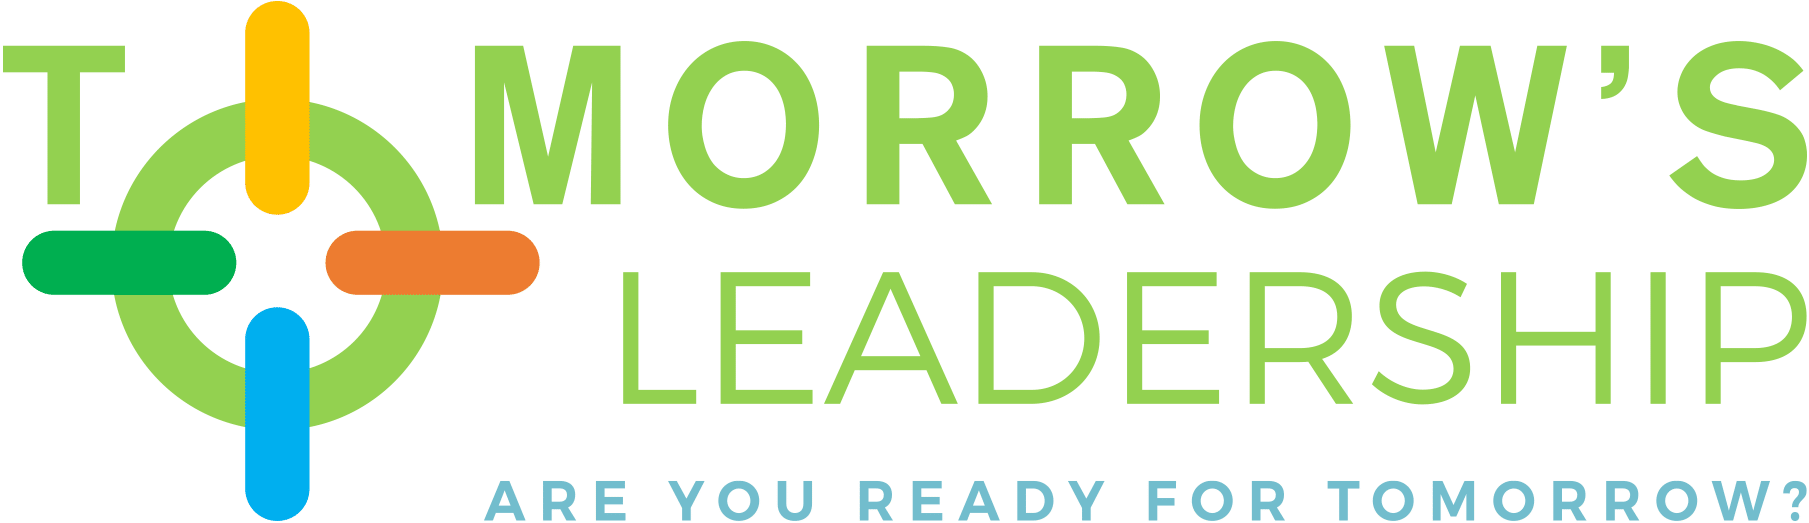 De logo van tomorrowsleadership